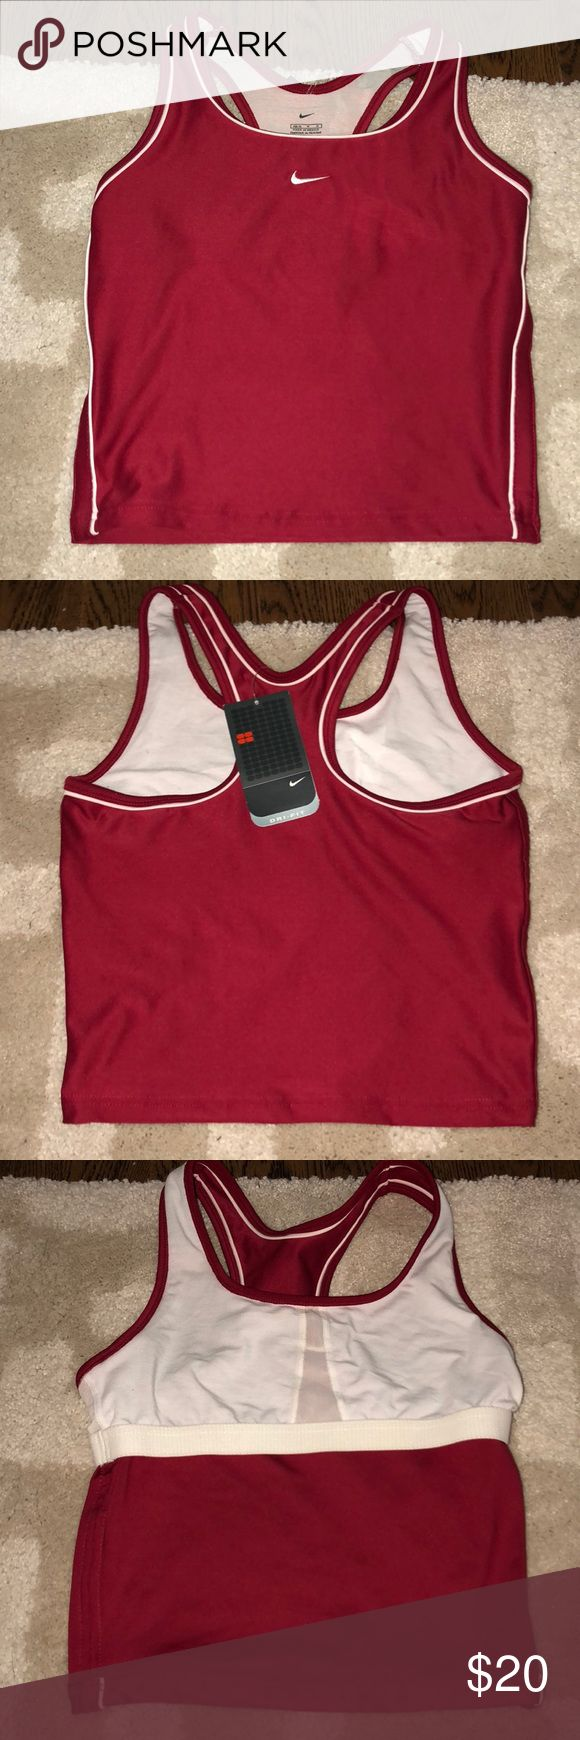 NIKE sports tank !!! size: MEDIUM fusia and white sports tank top !! super cute with built in bra, dri fit material, and very comfortable !! Tops Tank Tops